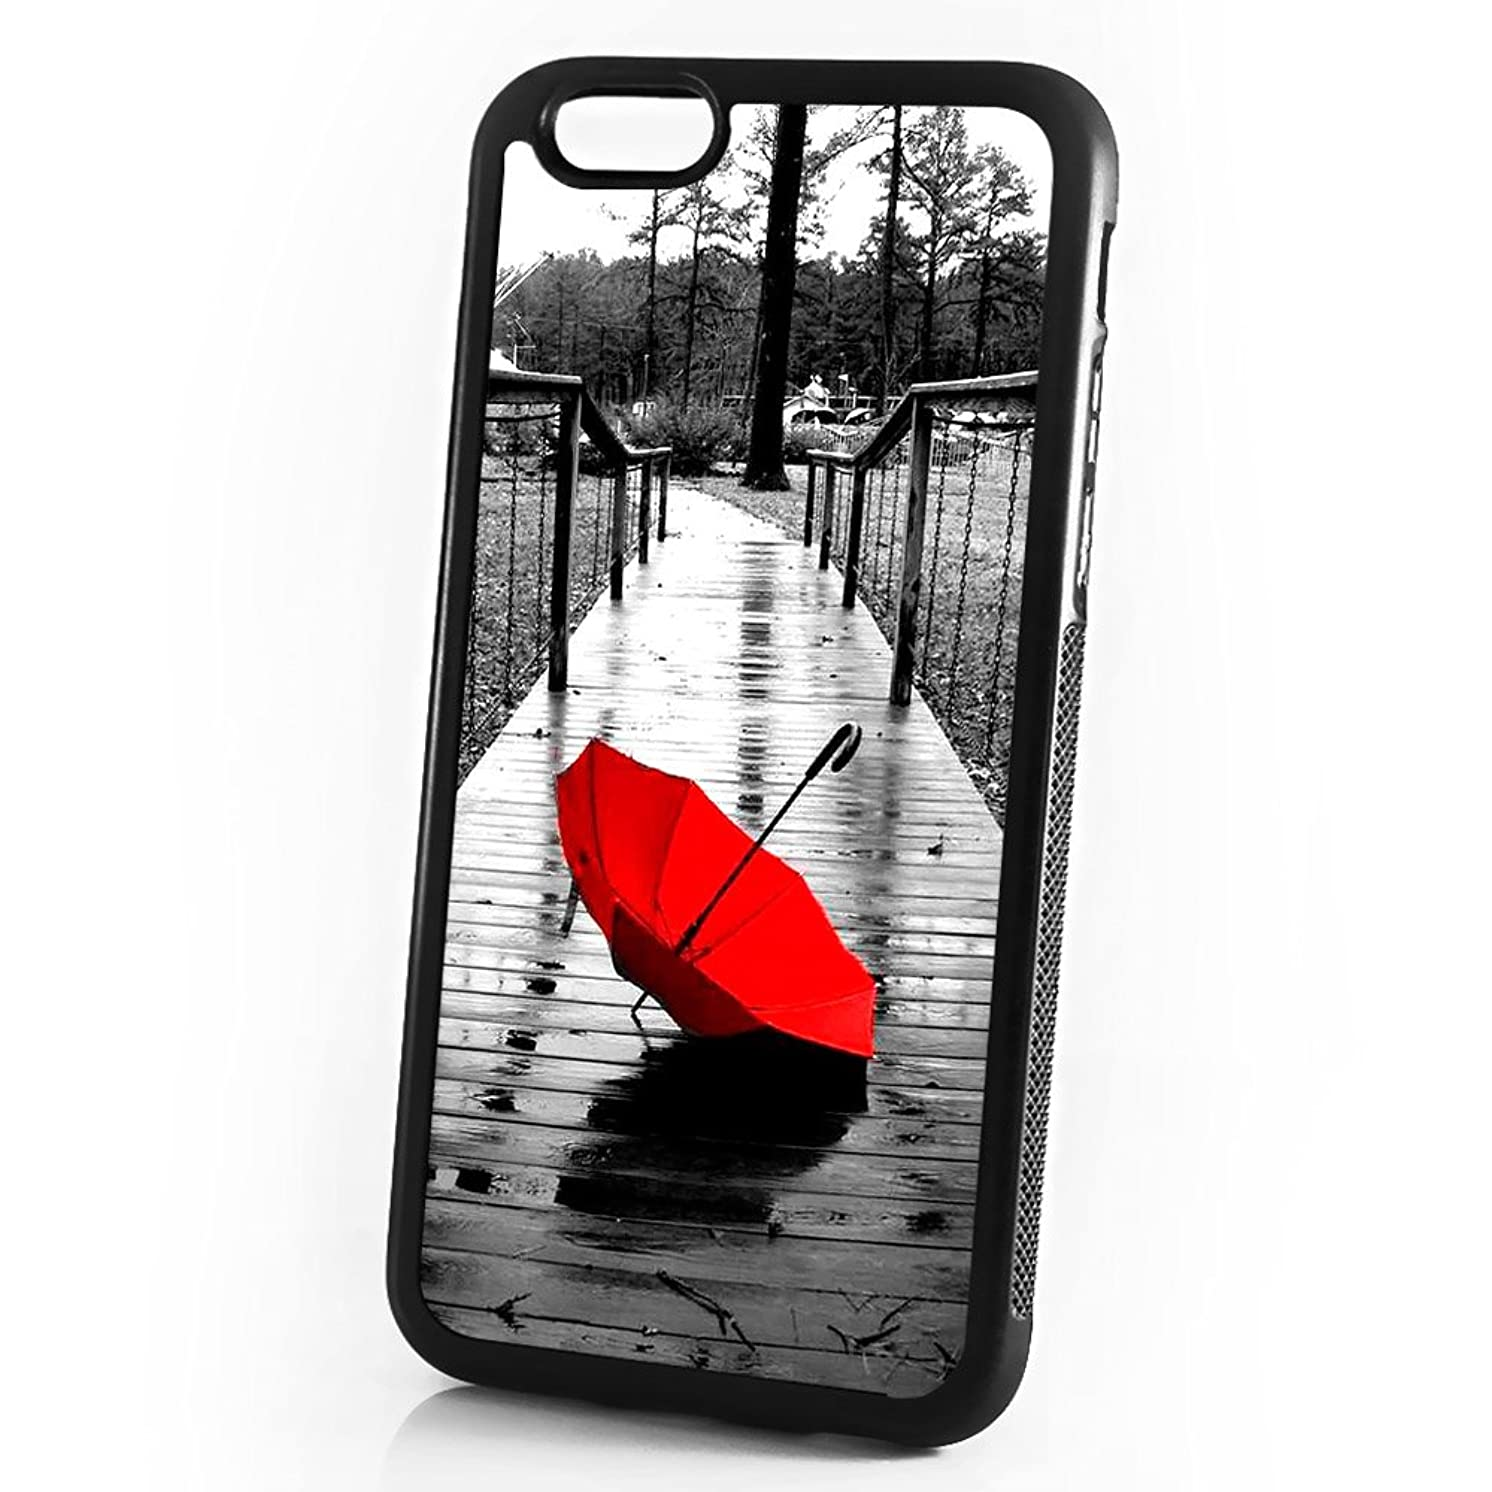 ( For iPhone 8 Plus / iPhone 7 Plus ) Shock Proof Soft Phone Case Cover Phone Case Back Cover - HOT10065 Red Umbrella